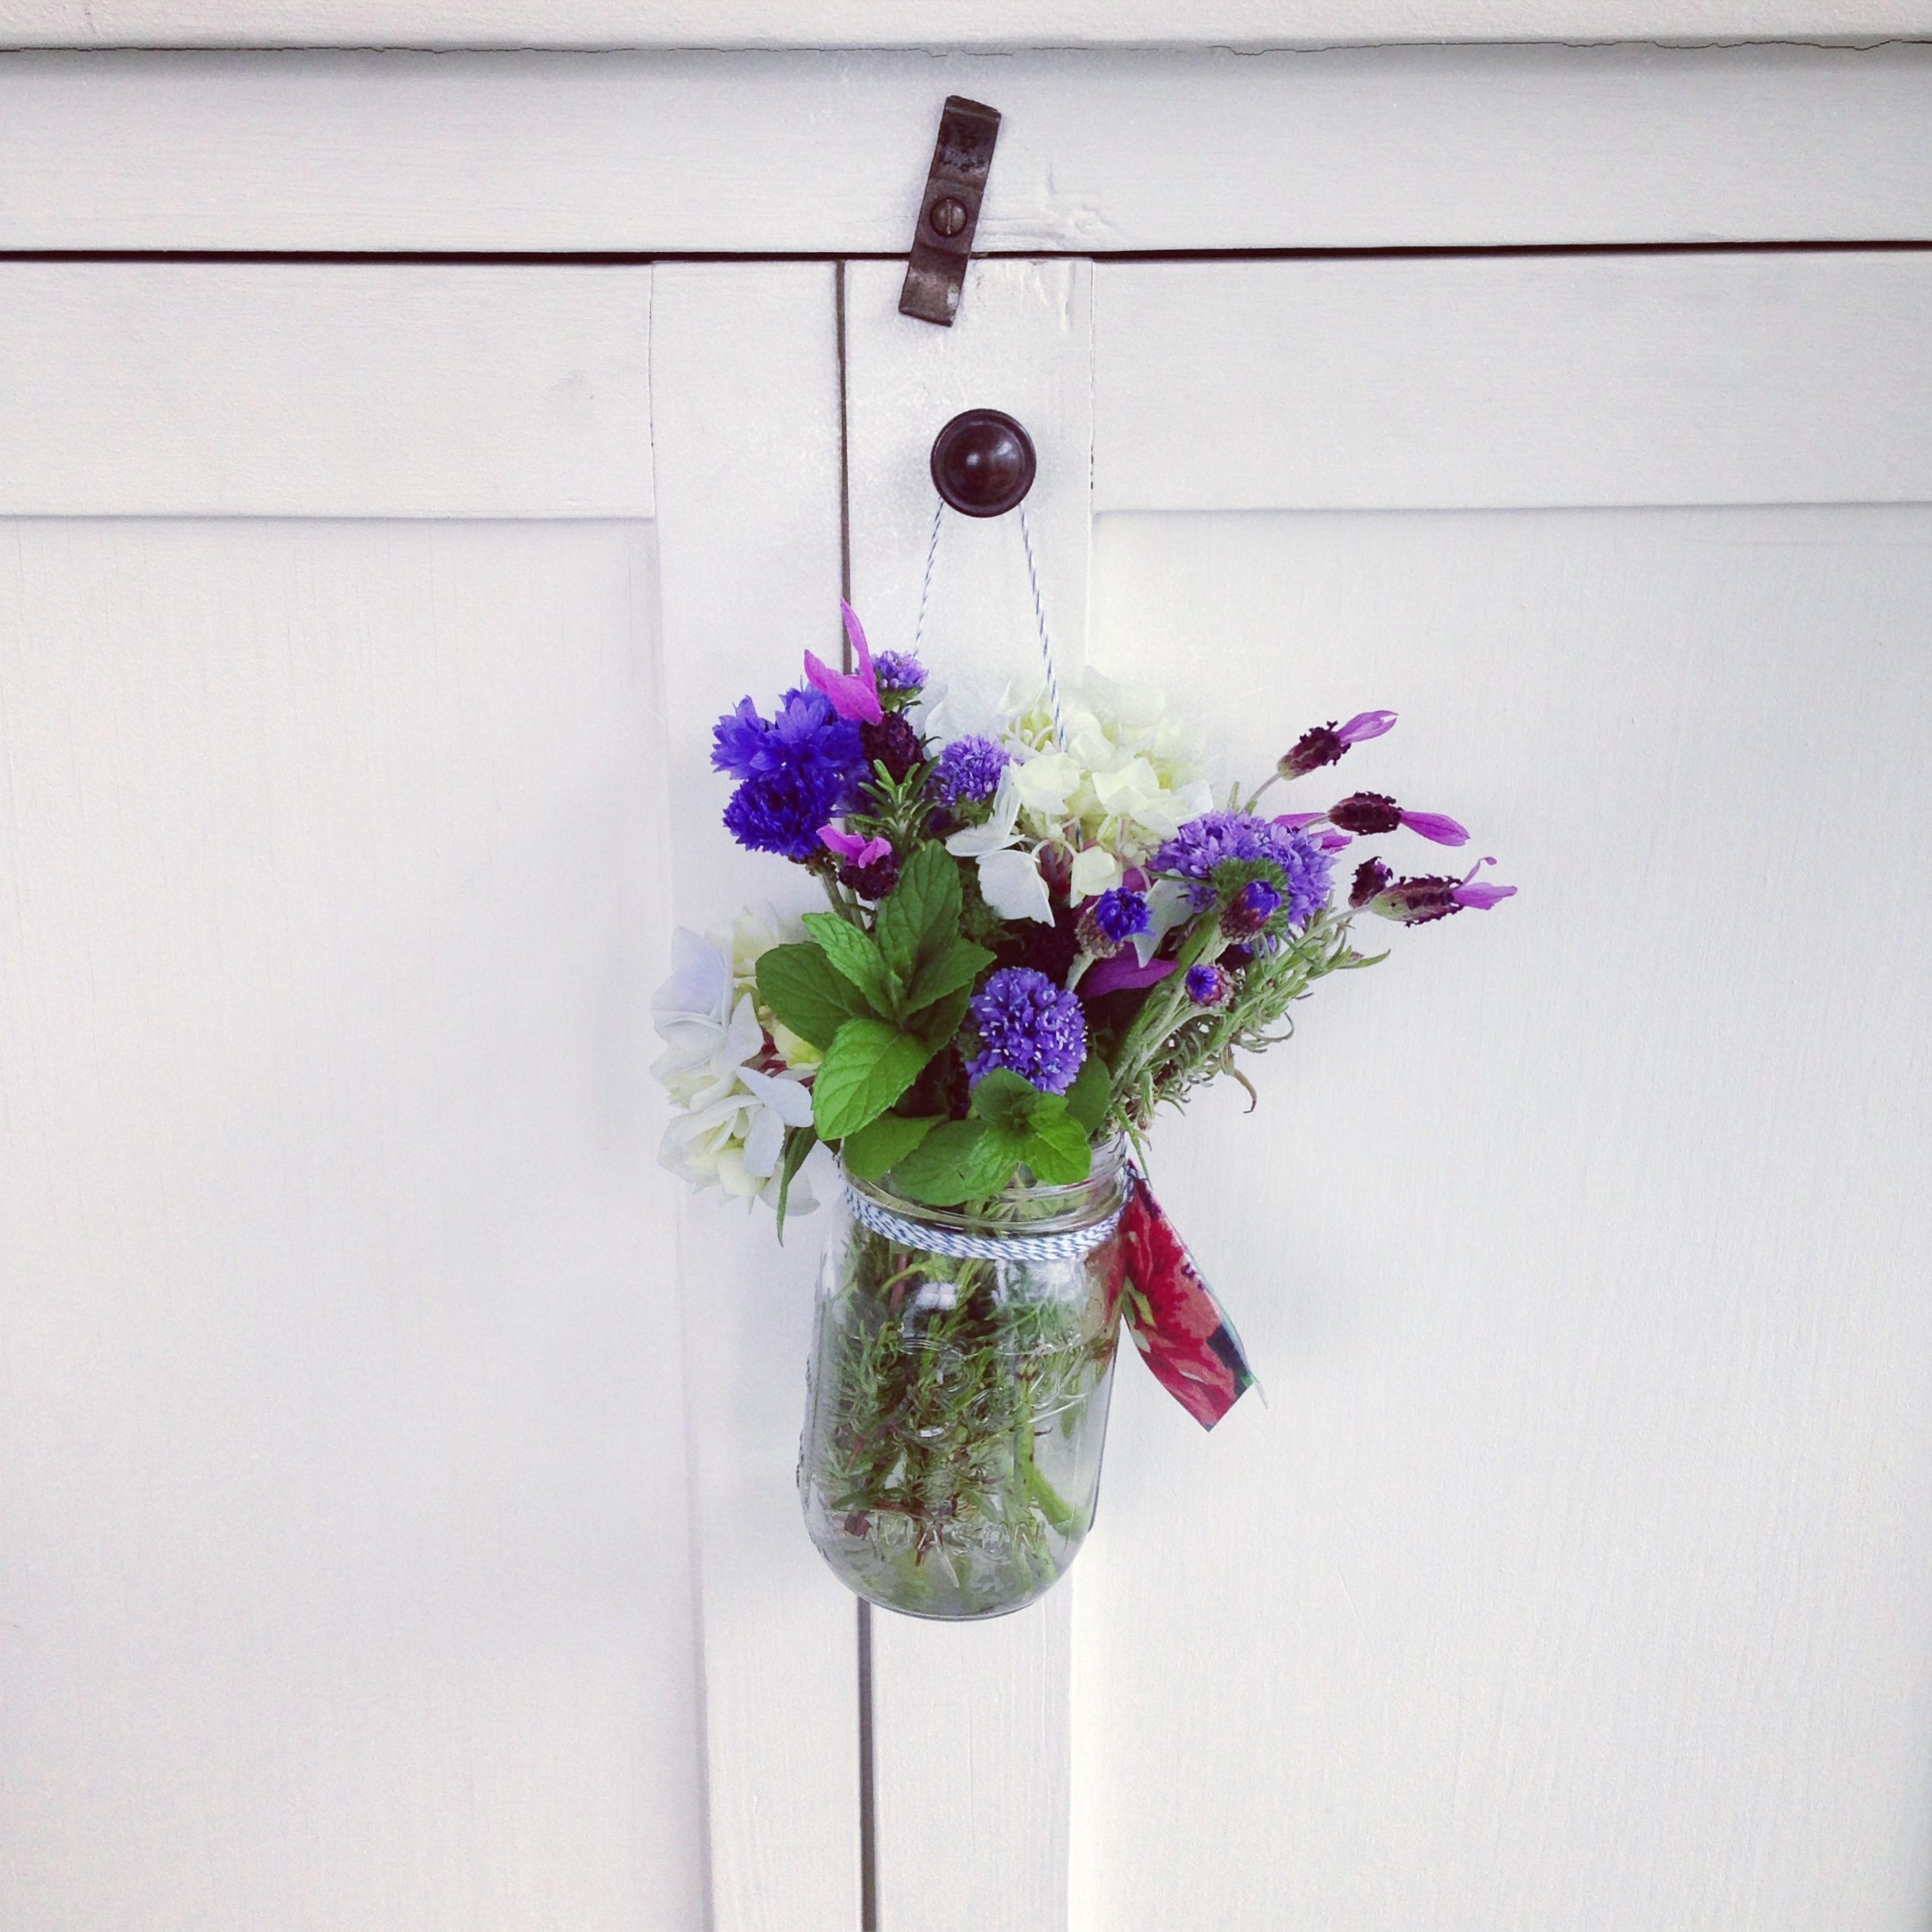 May Day posie of hand-picked flowers www.apartmentapothecary.com